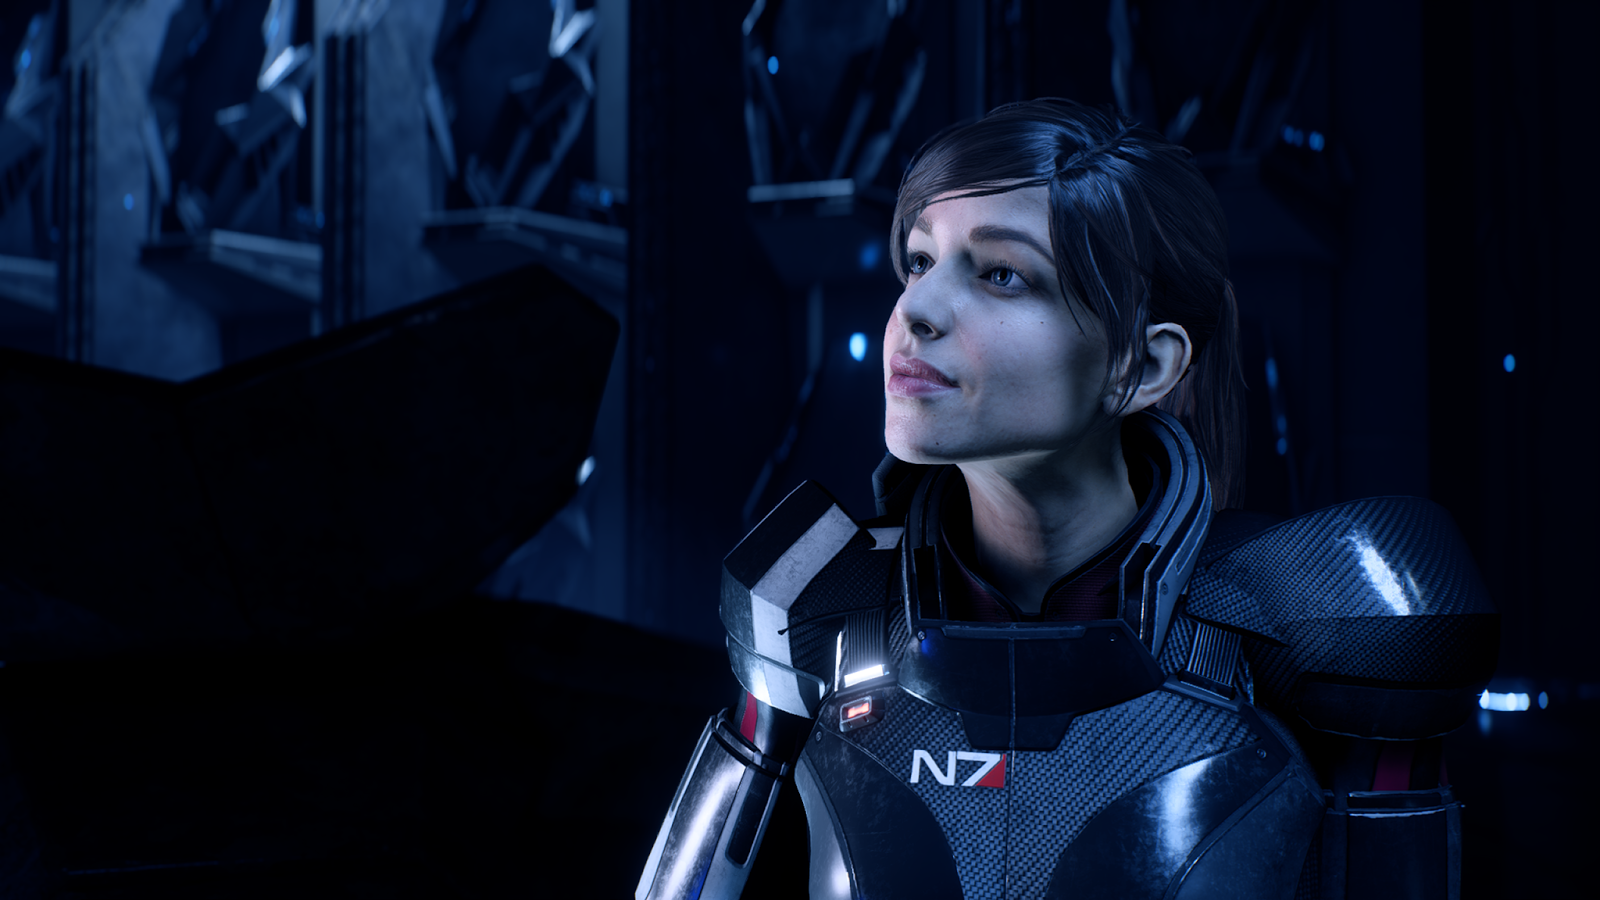 T22 Gaming Mass Effect Andromeda Sara Ryder Game Conclusion And